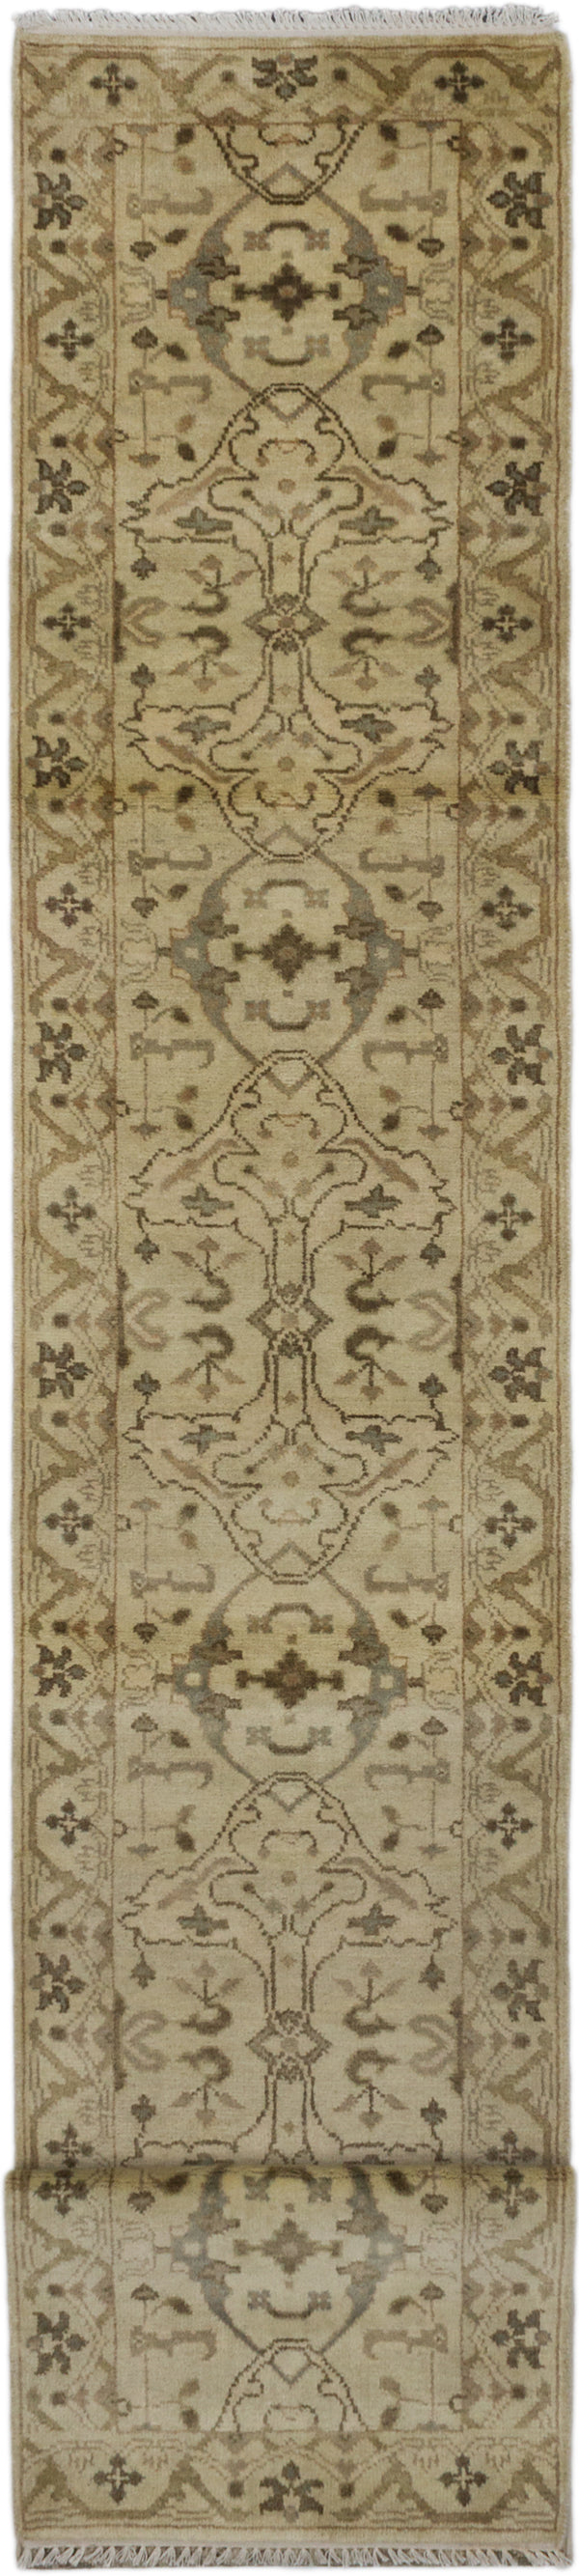 Hand-knotted Indian Traditional Royal-Ushak Runner rug  Cream 2.7 x 15.7